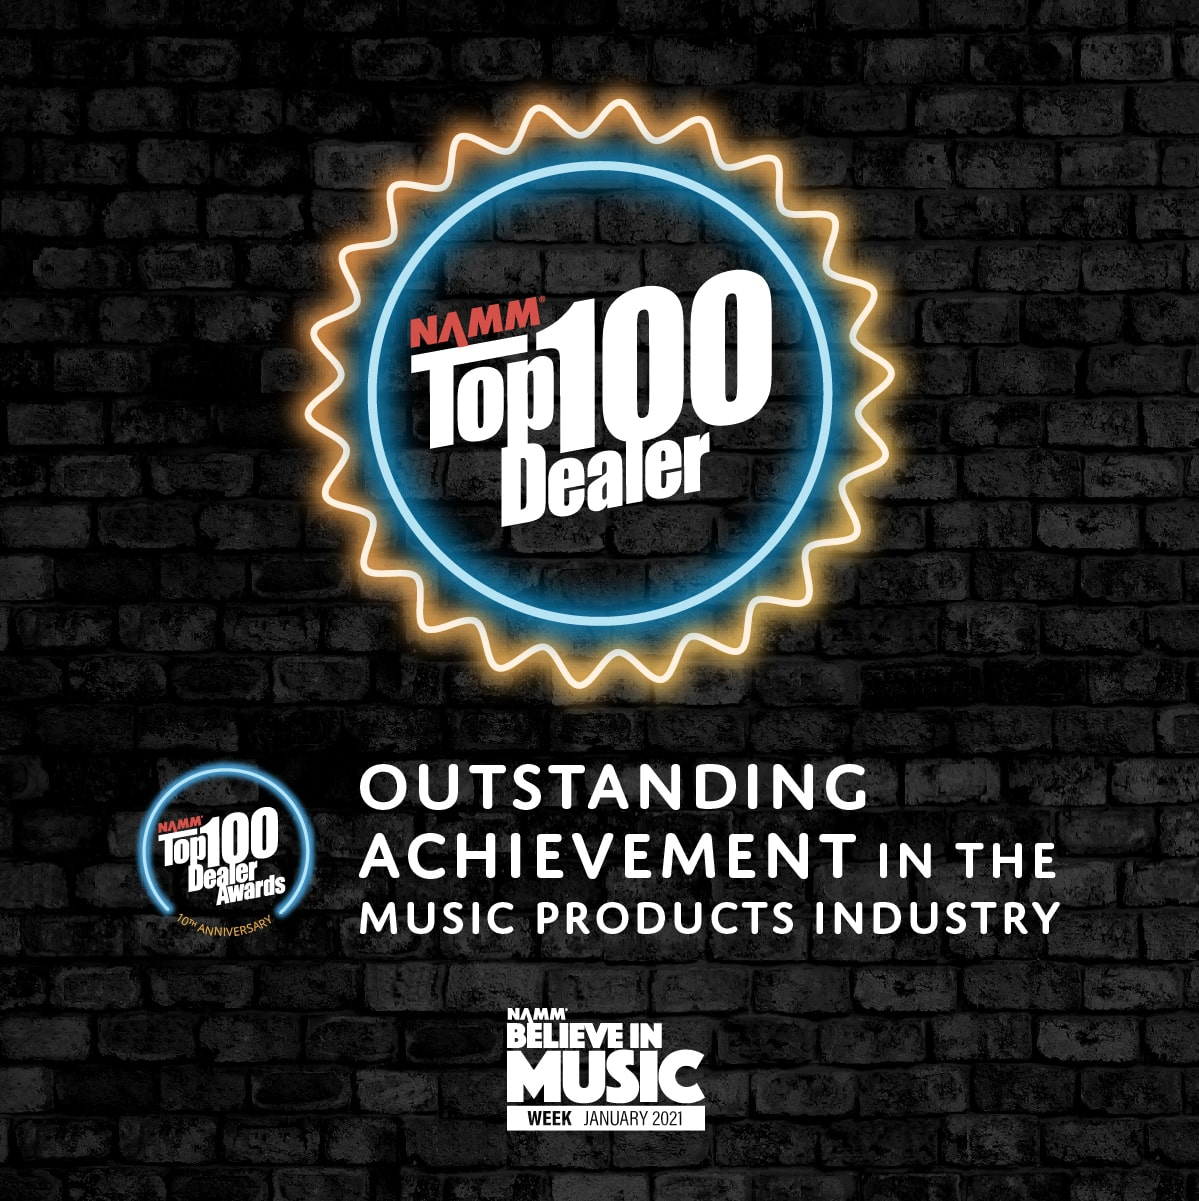 NAMM Top Dealer Award 2020